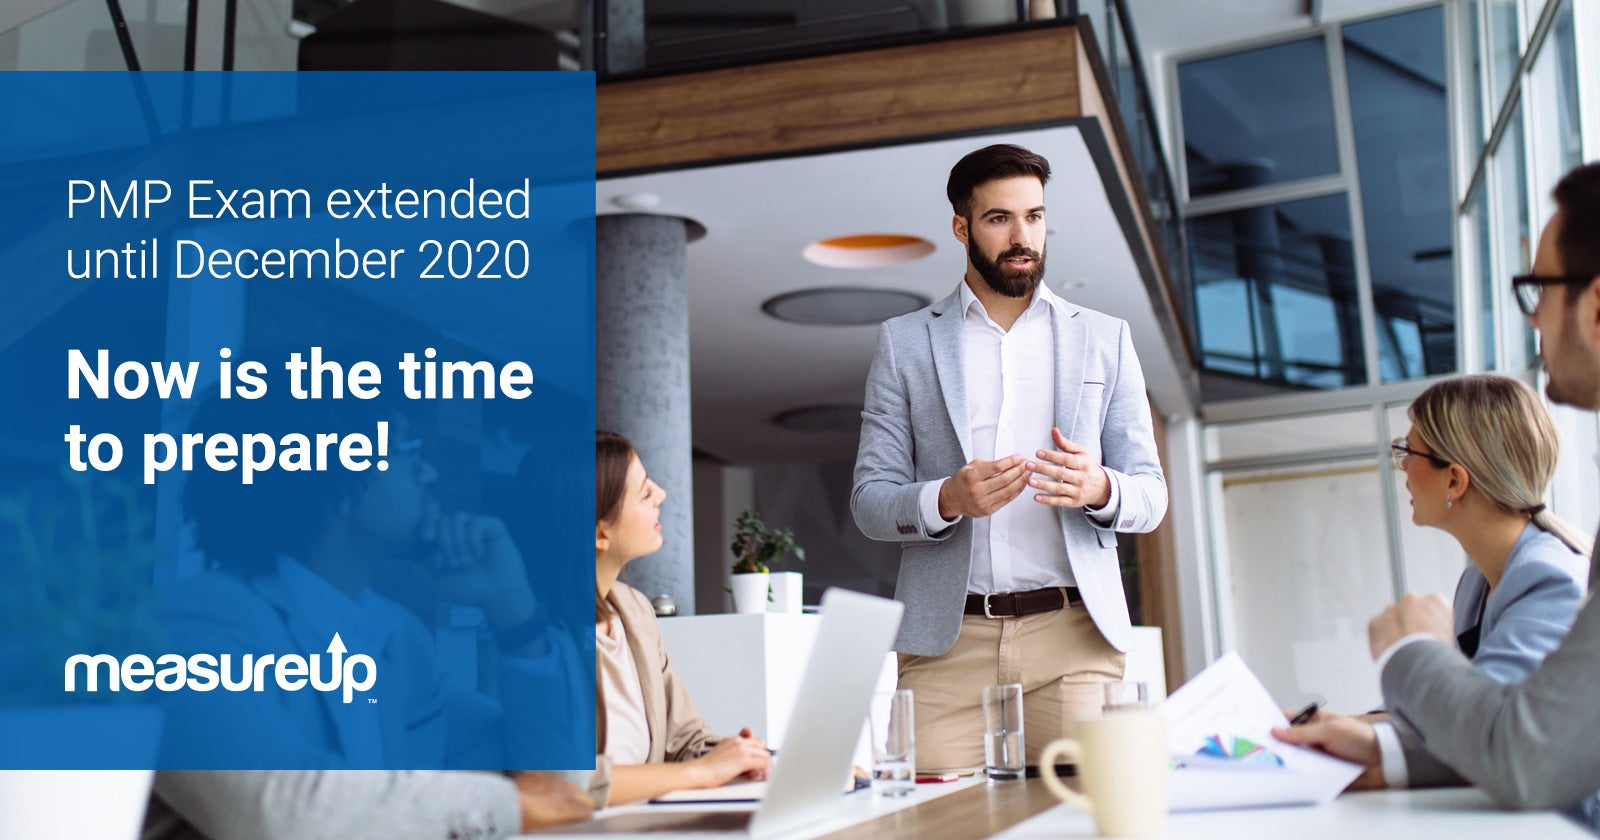 PMP current exam is extended until December 31, 2020: Now is the time to begin your preparation!